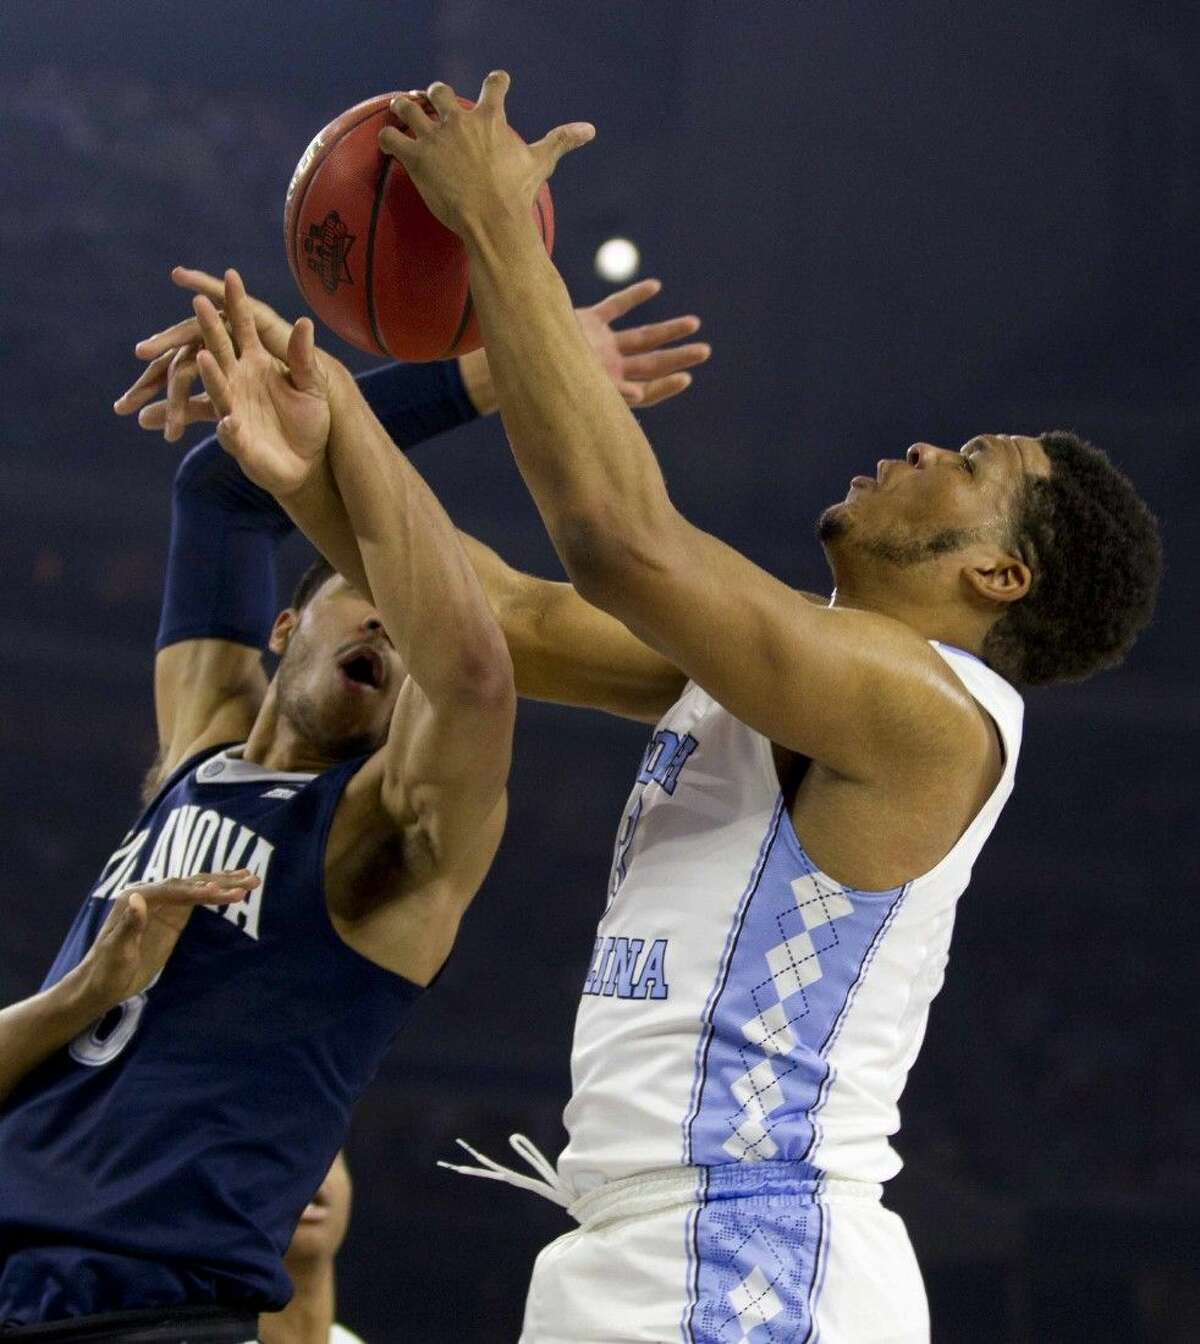 North Carolina forward Kennedy Meeks grabs a rebound over Villanova guard Josh Hart during the first half of an NCAA Final Four national championship college basketball game on Monday at NRG Stadium in Houston.